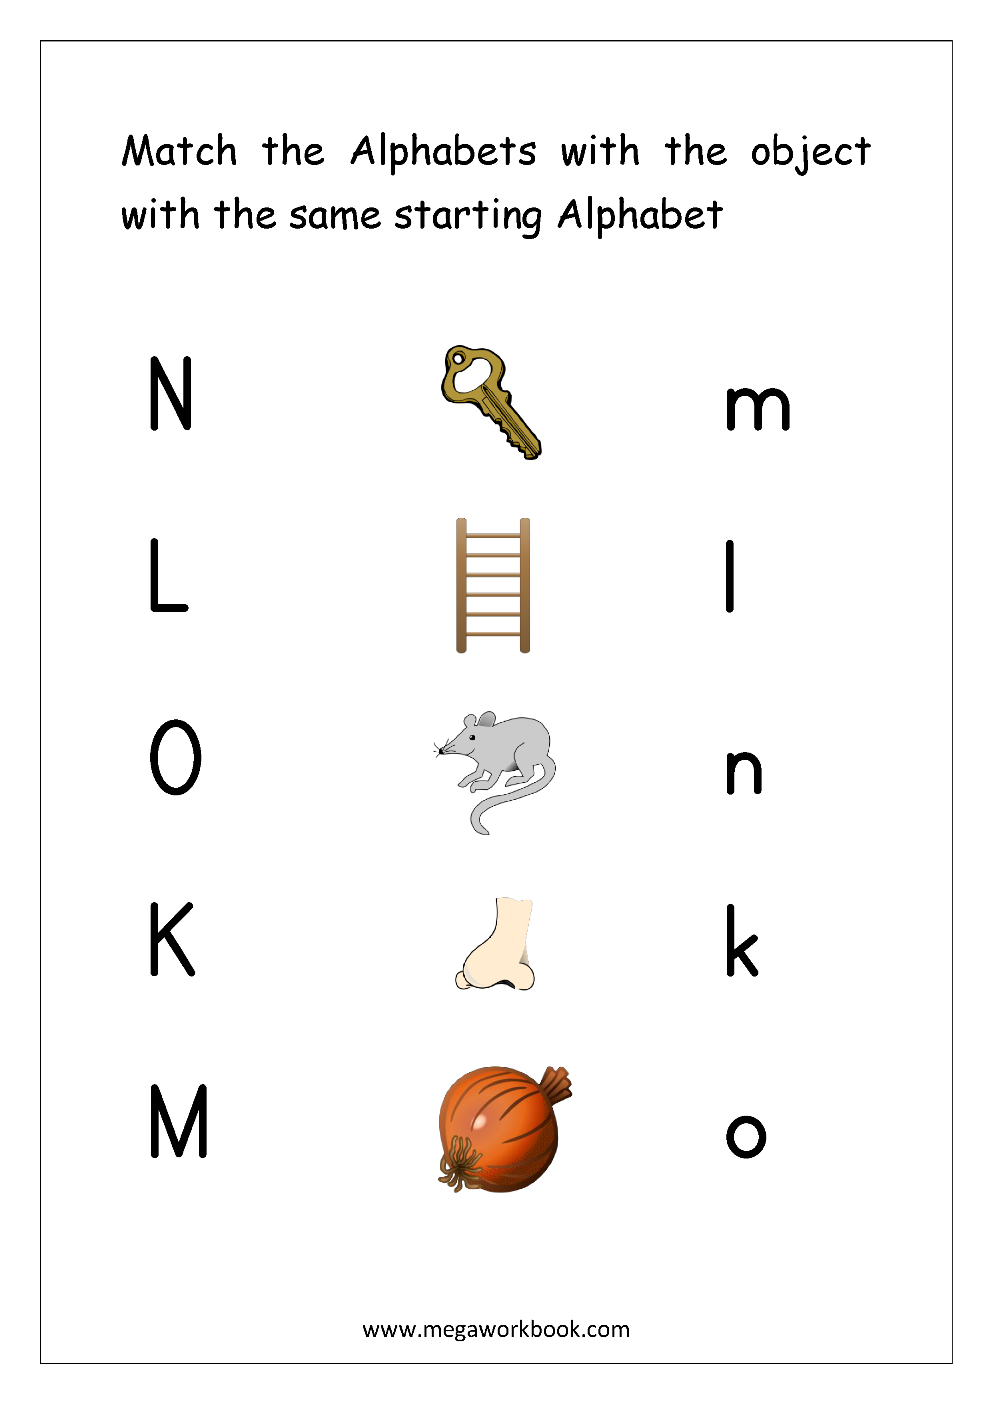 Free English Worksheets - Alphabet Matching - Megaworkbook within Alphabet Knowledge Worksheets